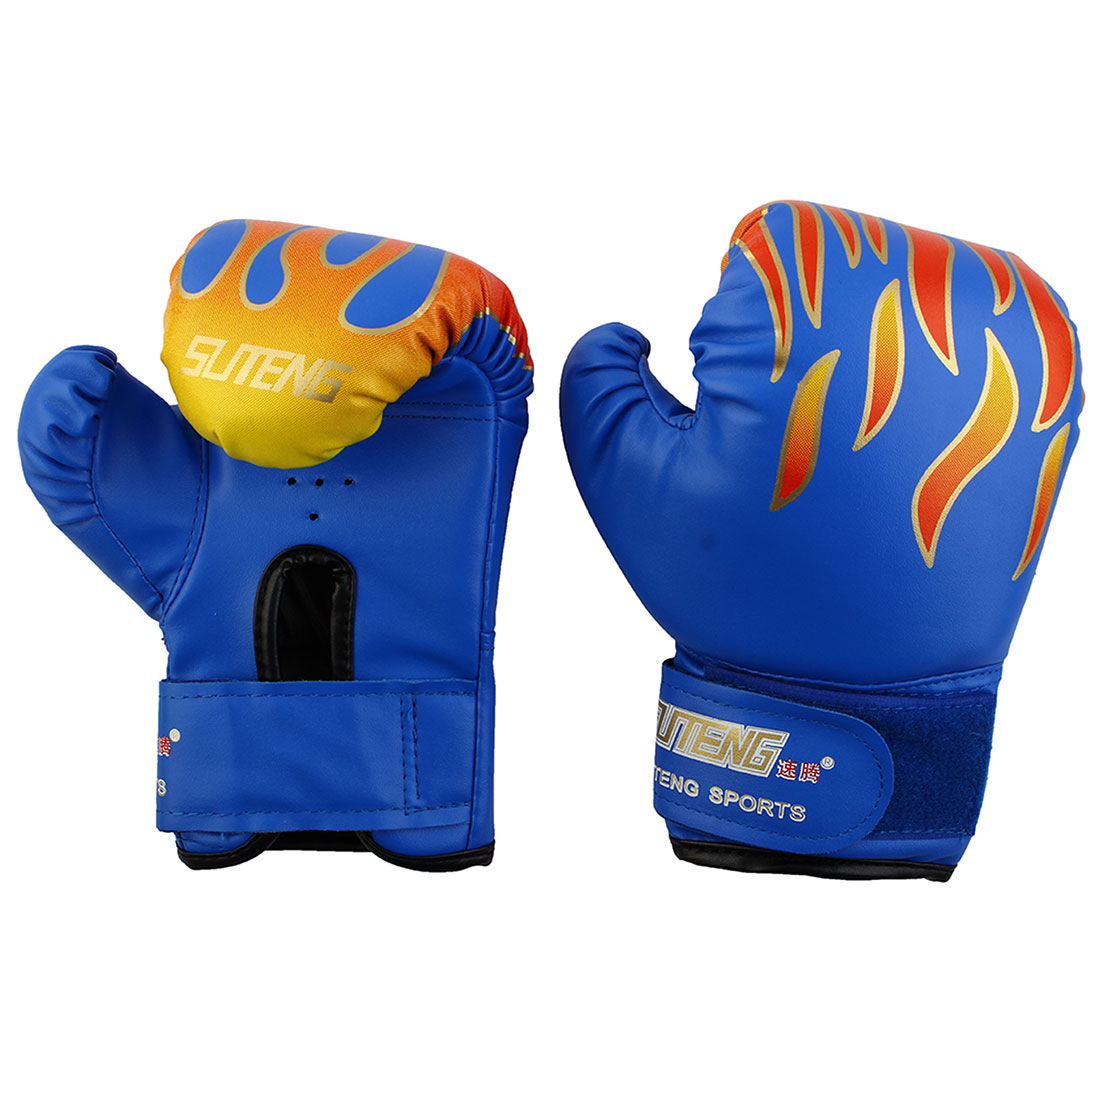 SUTENG Authorized Adult PU Flame Print Sparring Punching Bag Mitts Kickboxing Fighting Boxing Gloves Pair Blue